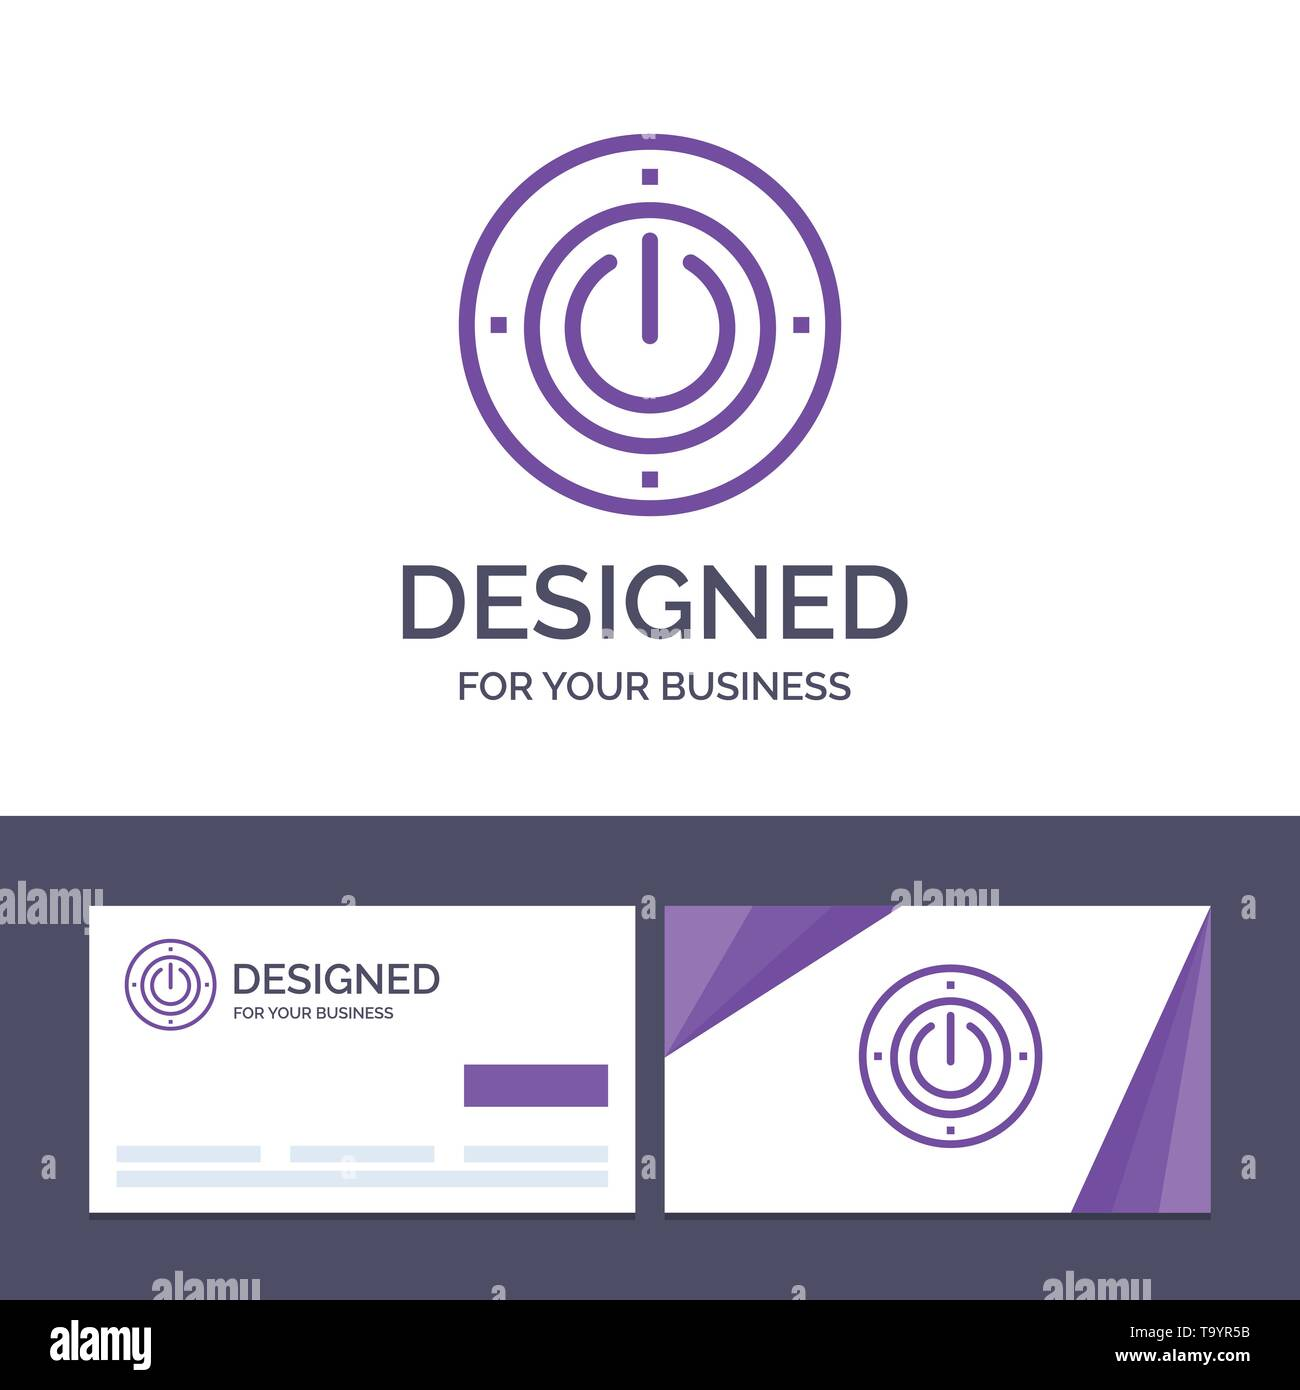 Creative Business Card and Logo template Electricity, Energy, Power, Computing Vector Illustration - Stock Image